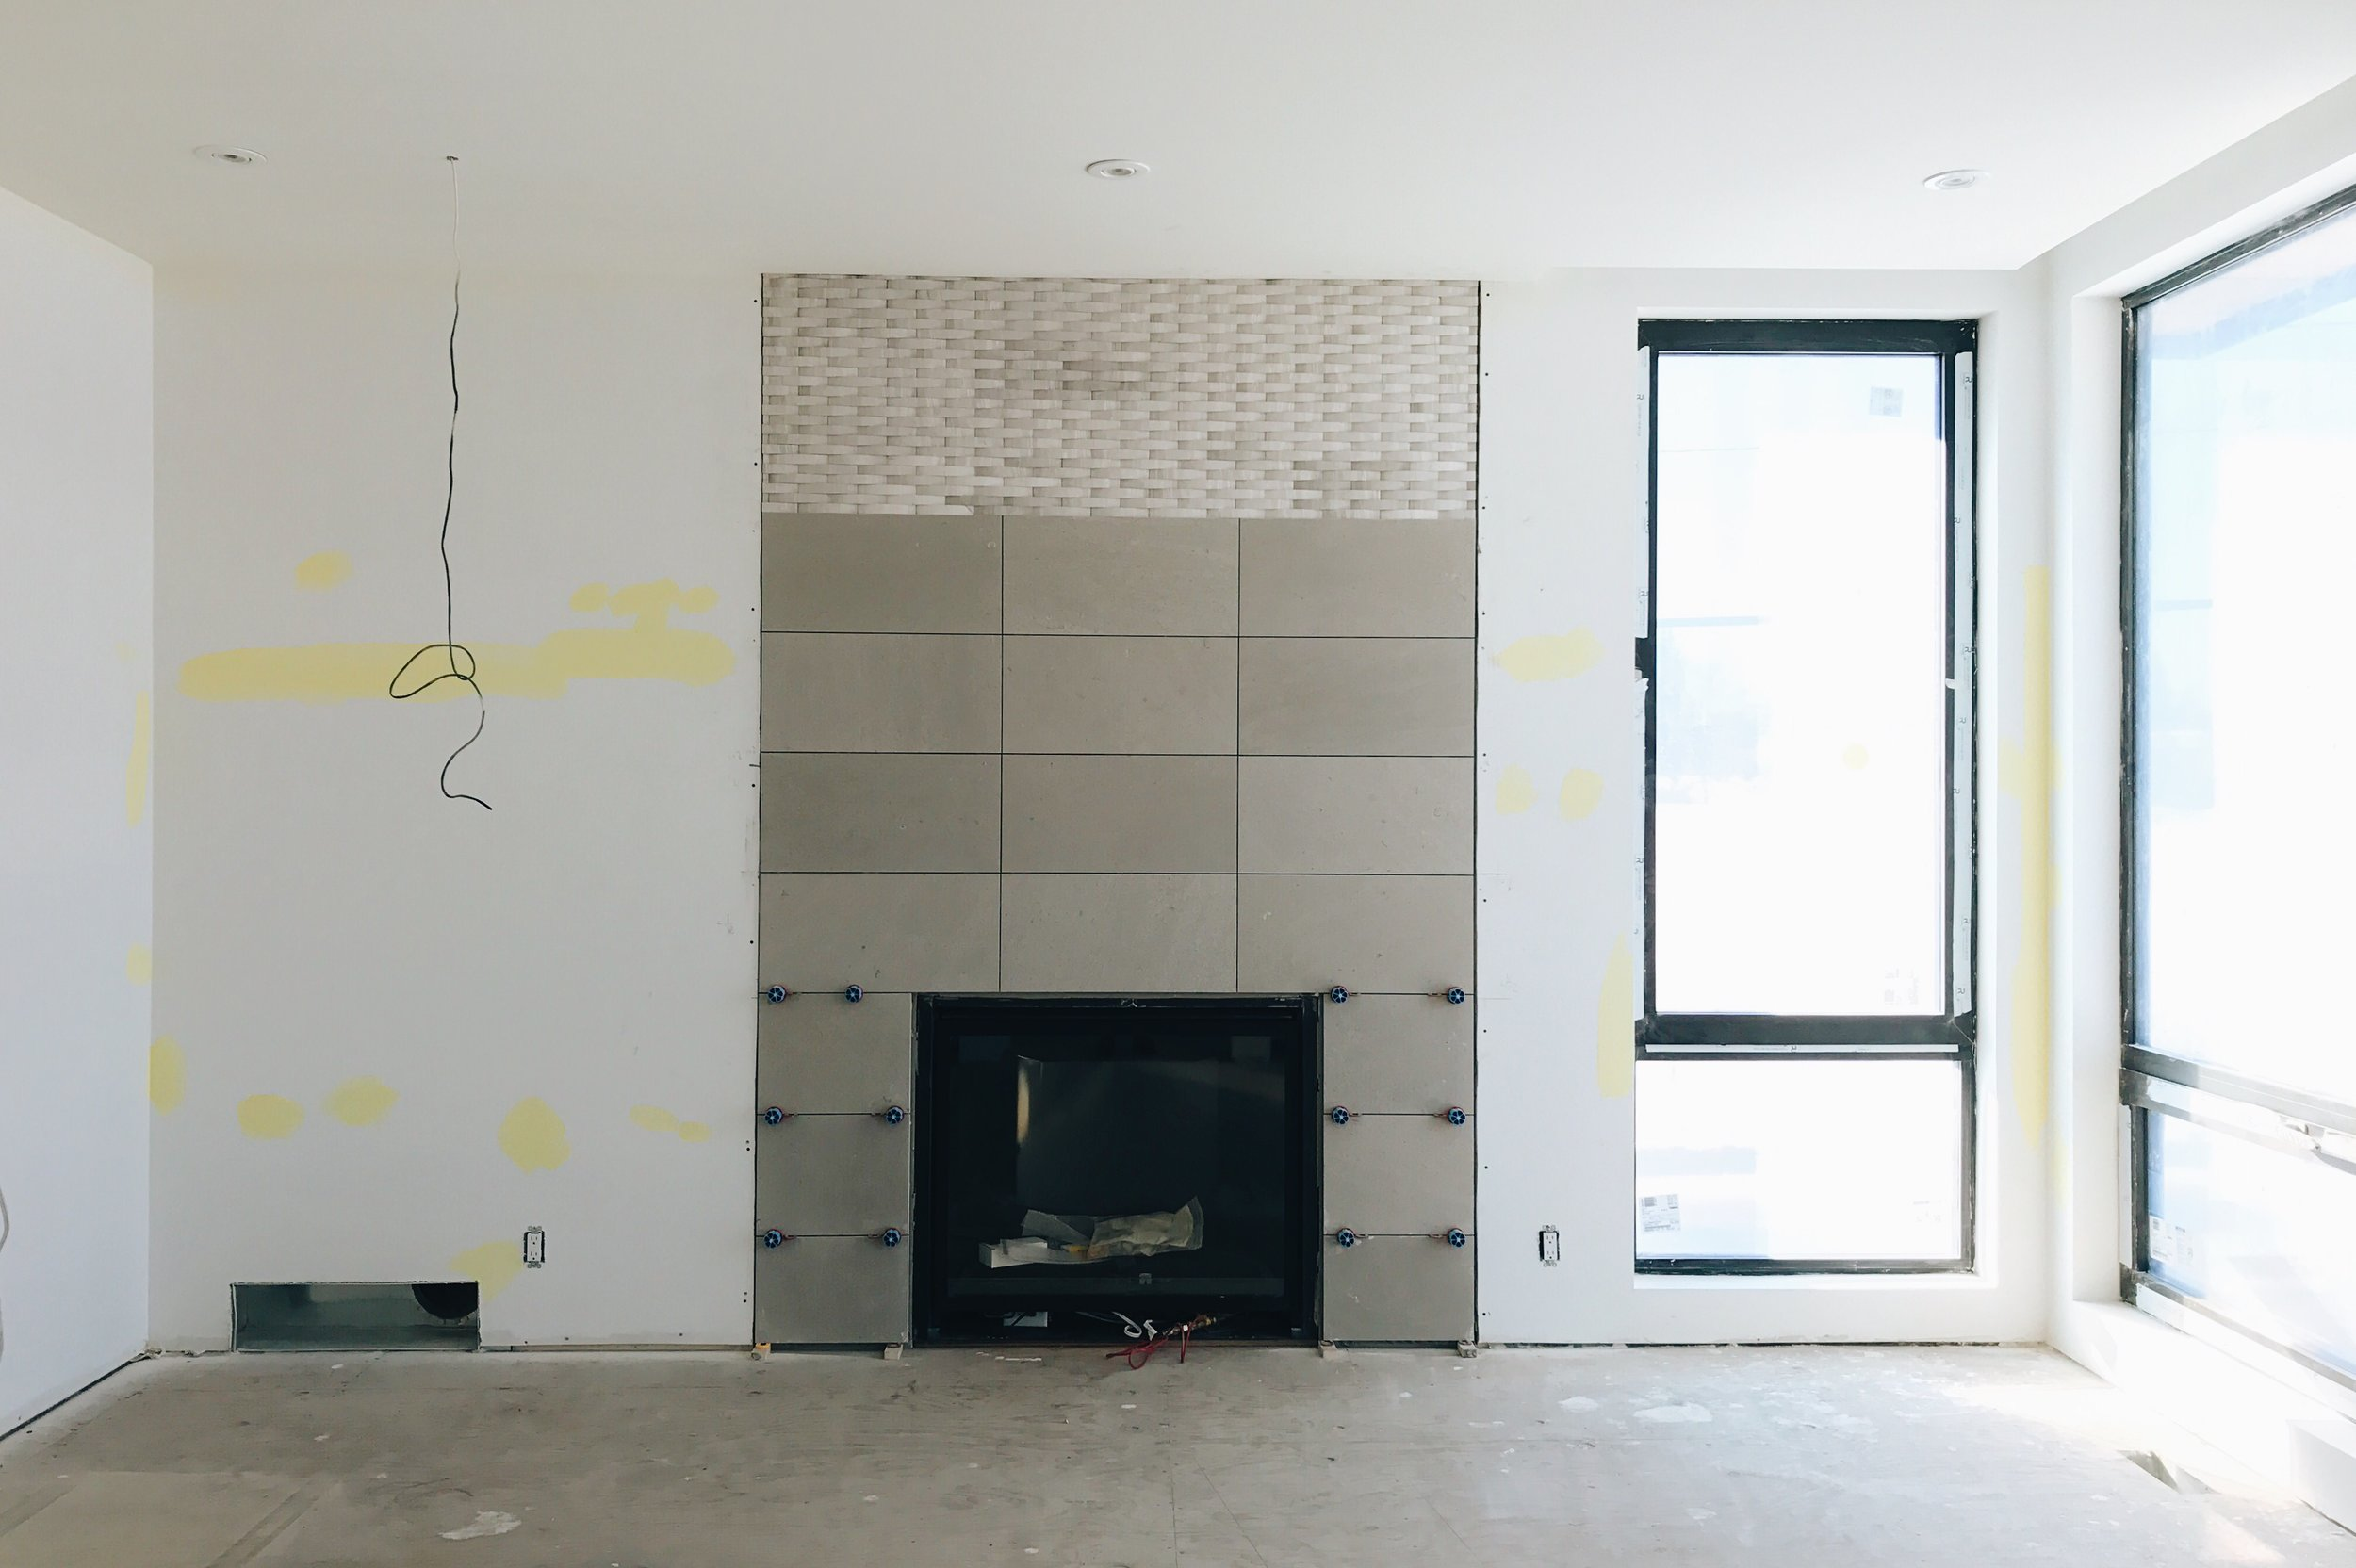 The fireplace wall is near completion and hardwood is ready to be installed. On a side note...these windows are stunning.